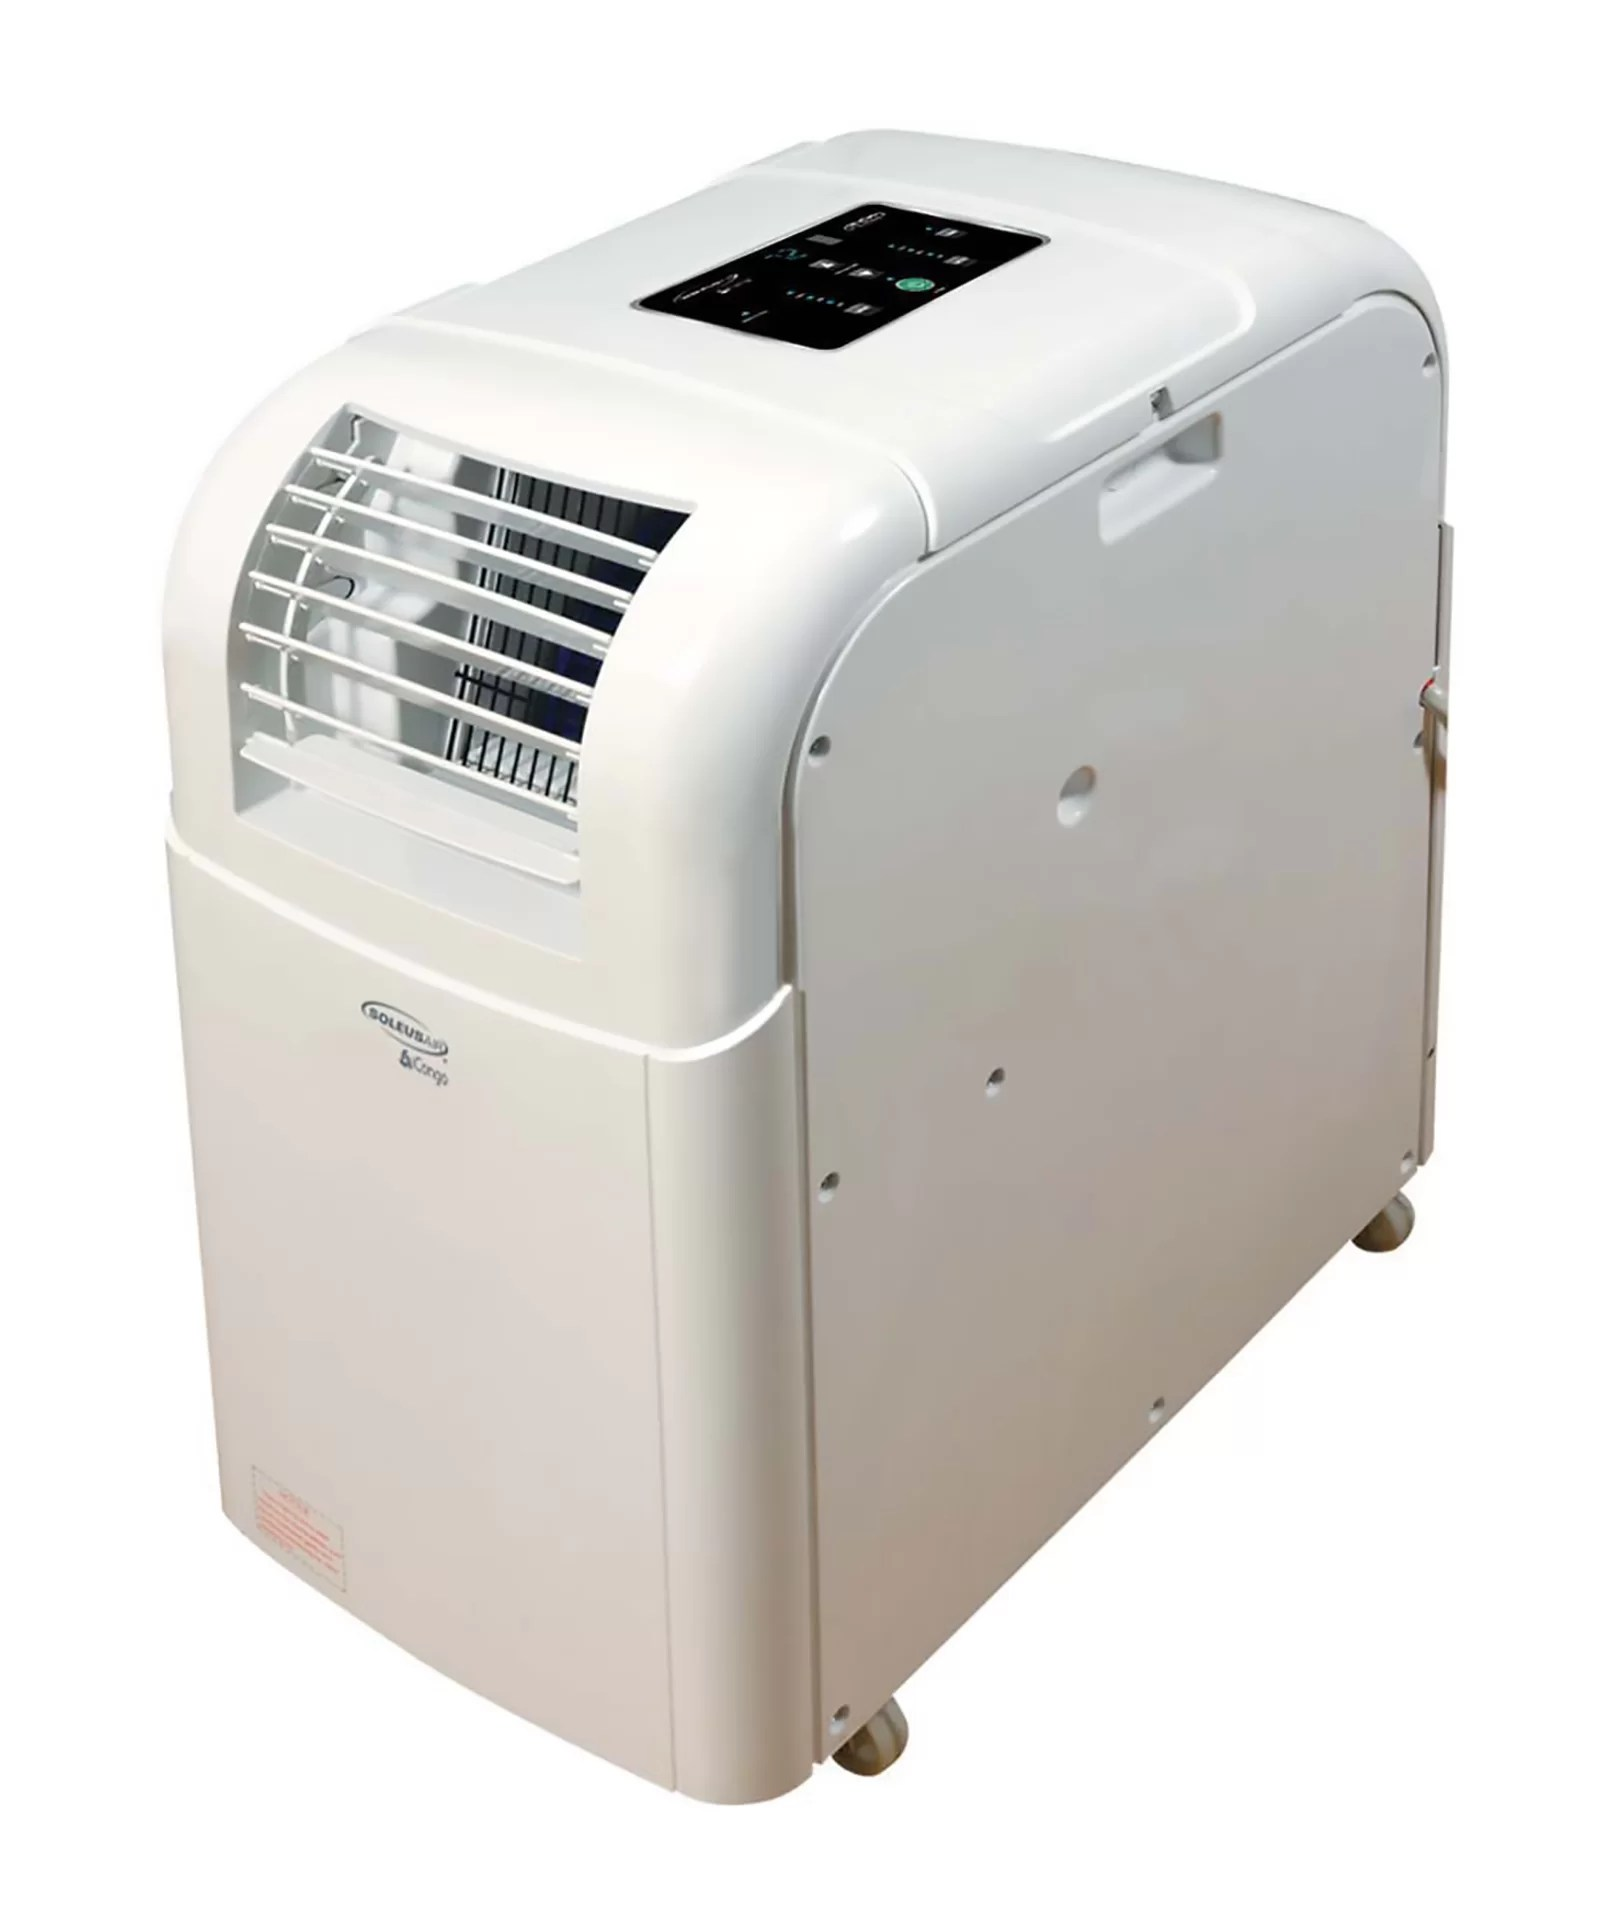 Portable Air Conditioner 12000 Btu Soleus Air 12 000 Btu Portable Air Conditioner With Remote